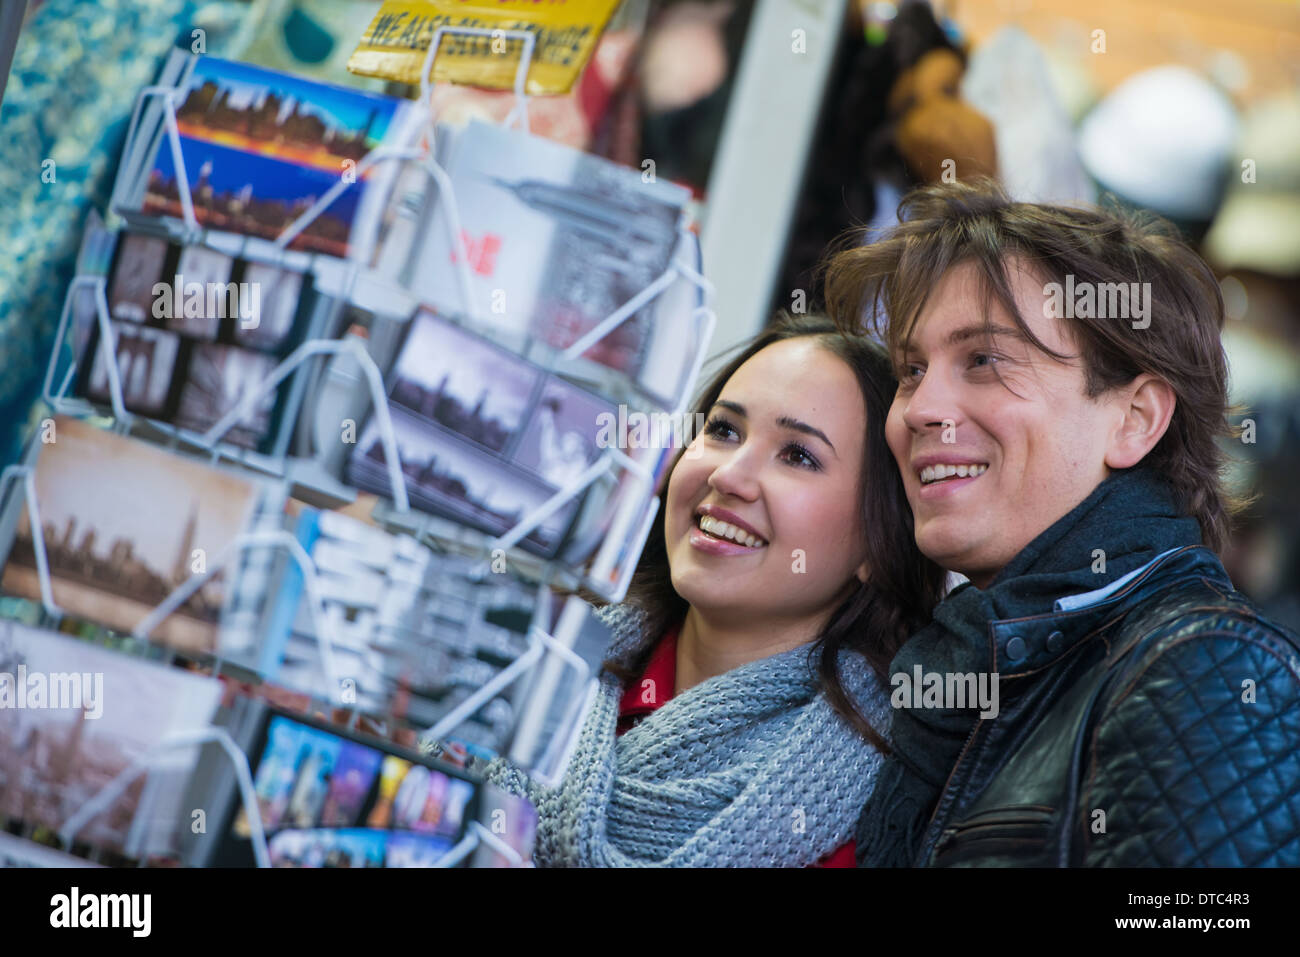 Young tourist couple looking at postcards, New York City, USA - Stock Image